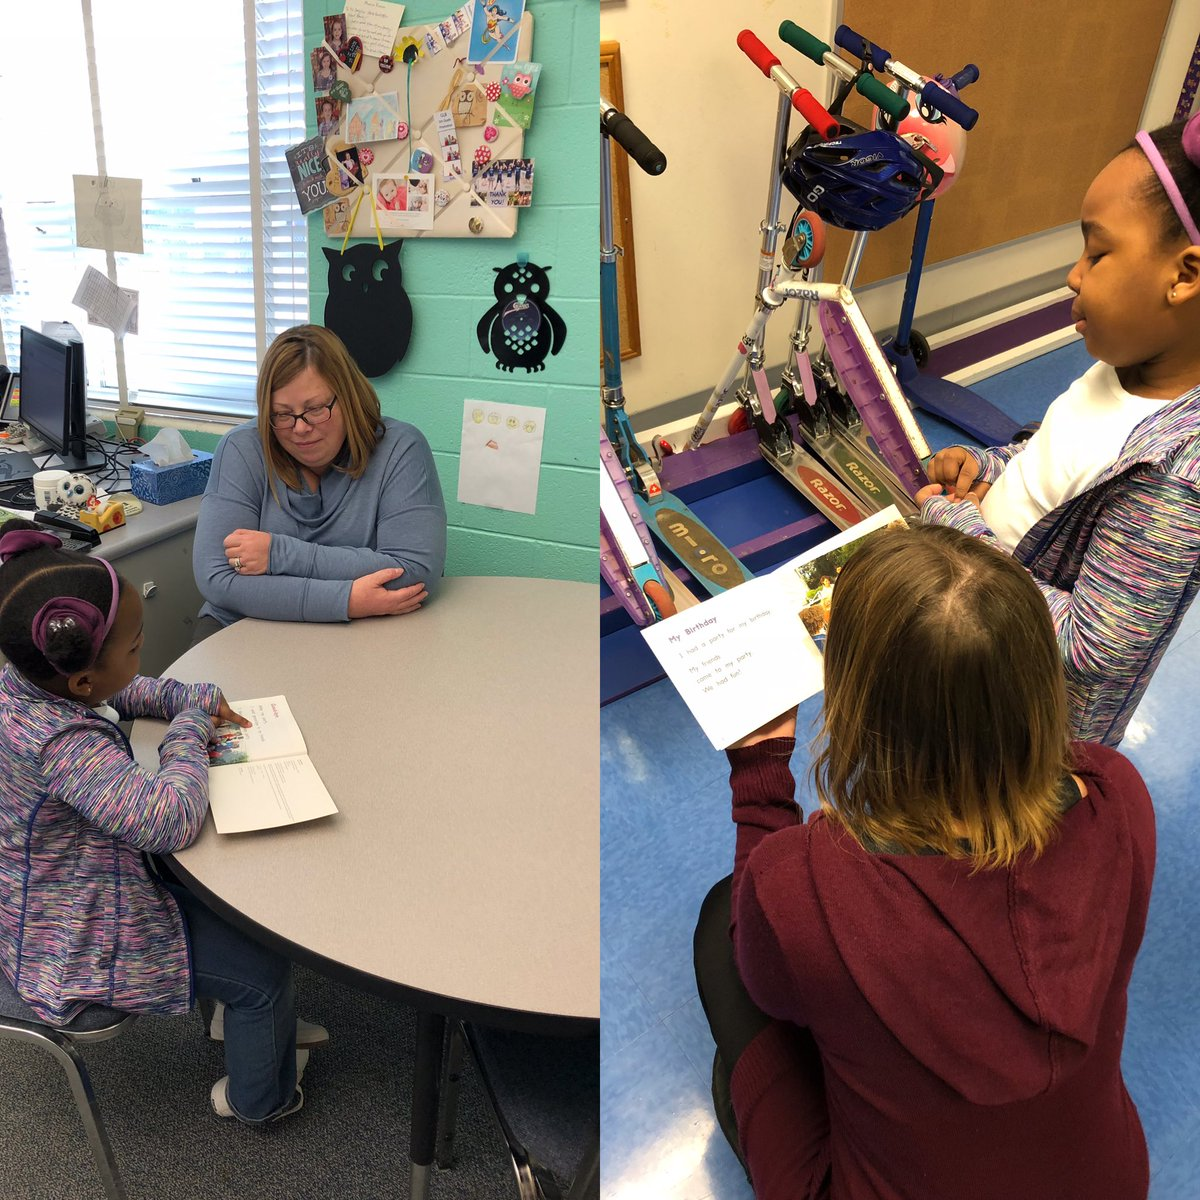 While waiting to read to Mrs Borg this AMAZING first grader read her book to Mrs. Zimmerman😀<a target='_blank' href='http://twitter.com/GlebeAPS'>@GlebeAPS</a> <a target='_blank' href='https://t.co/NdGXLohnrK'>https://t.co/NdGXLohnrK</a>